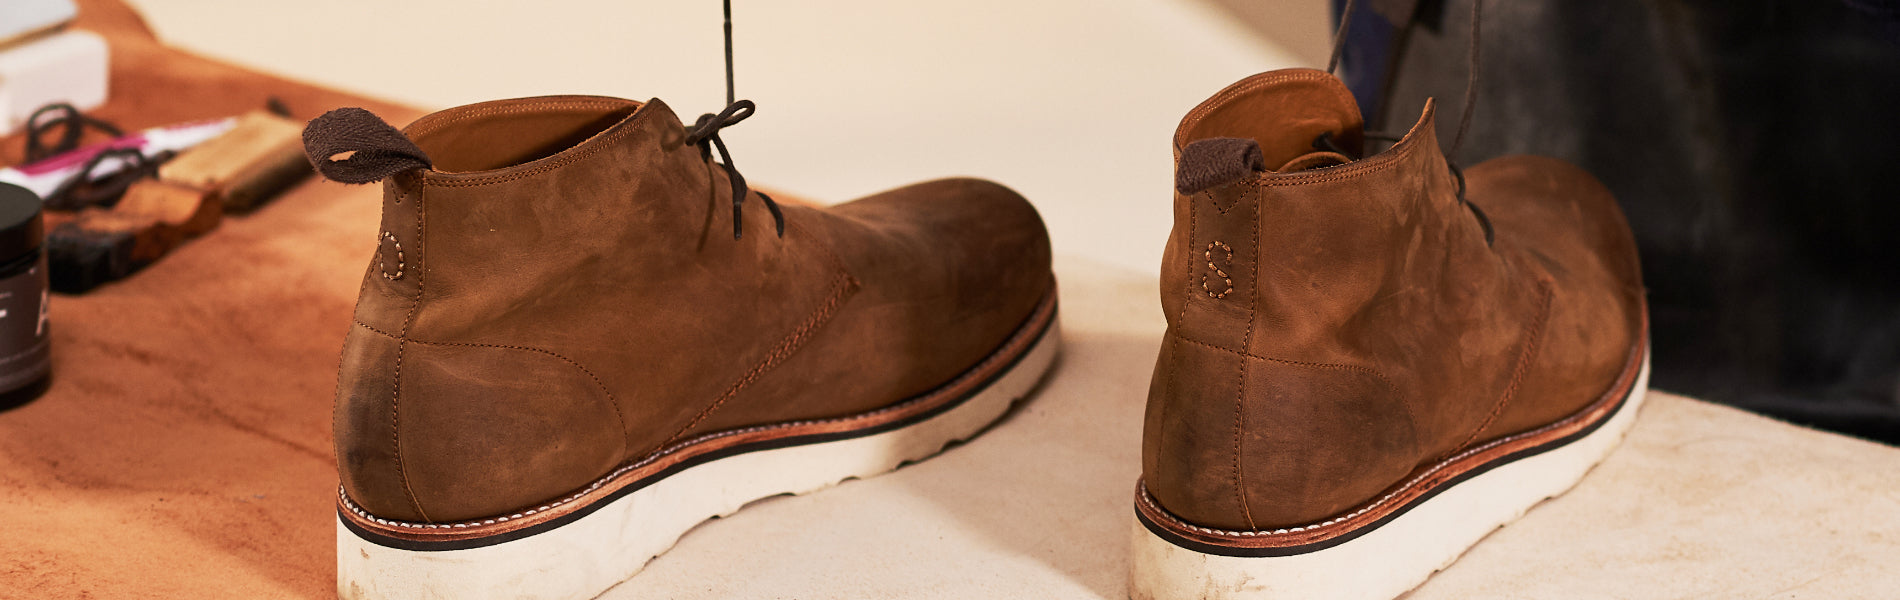 How To Care For Your Shoes - 6 tips